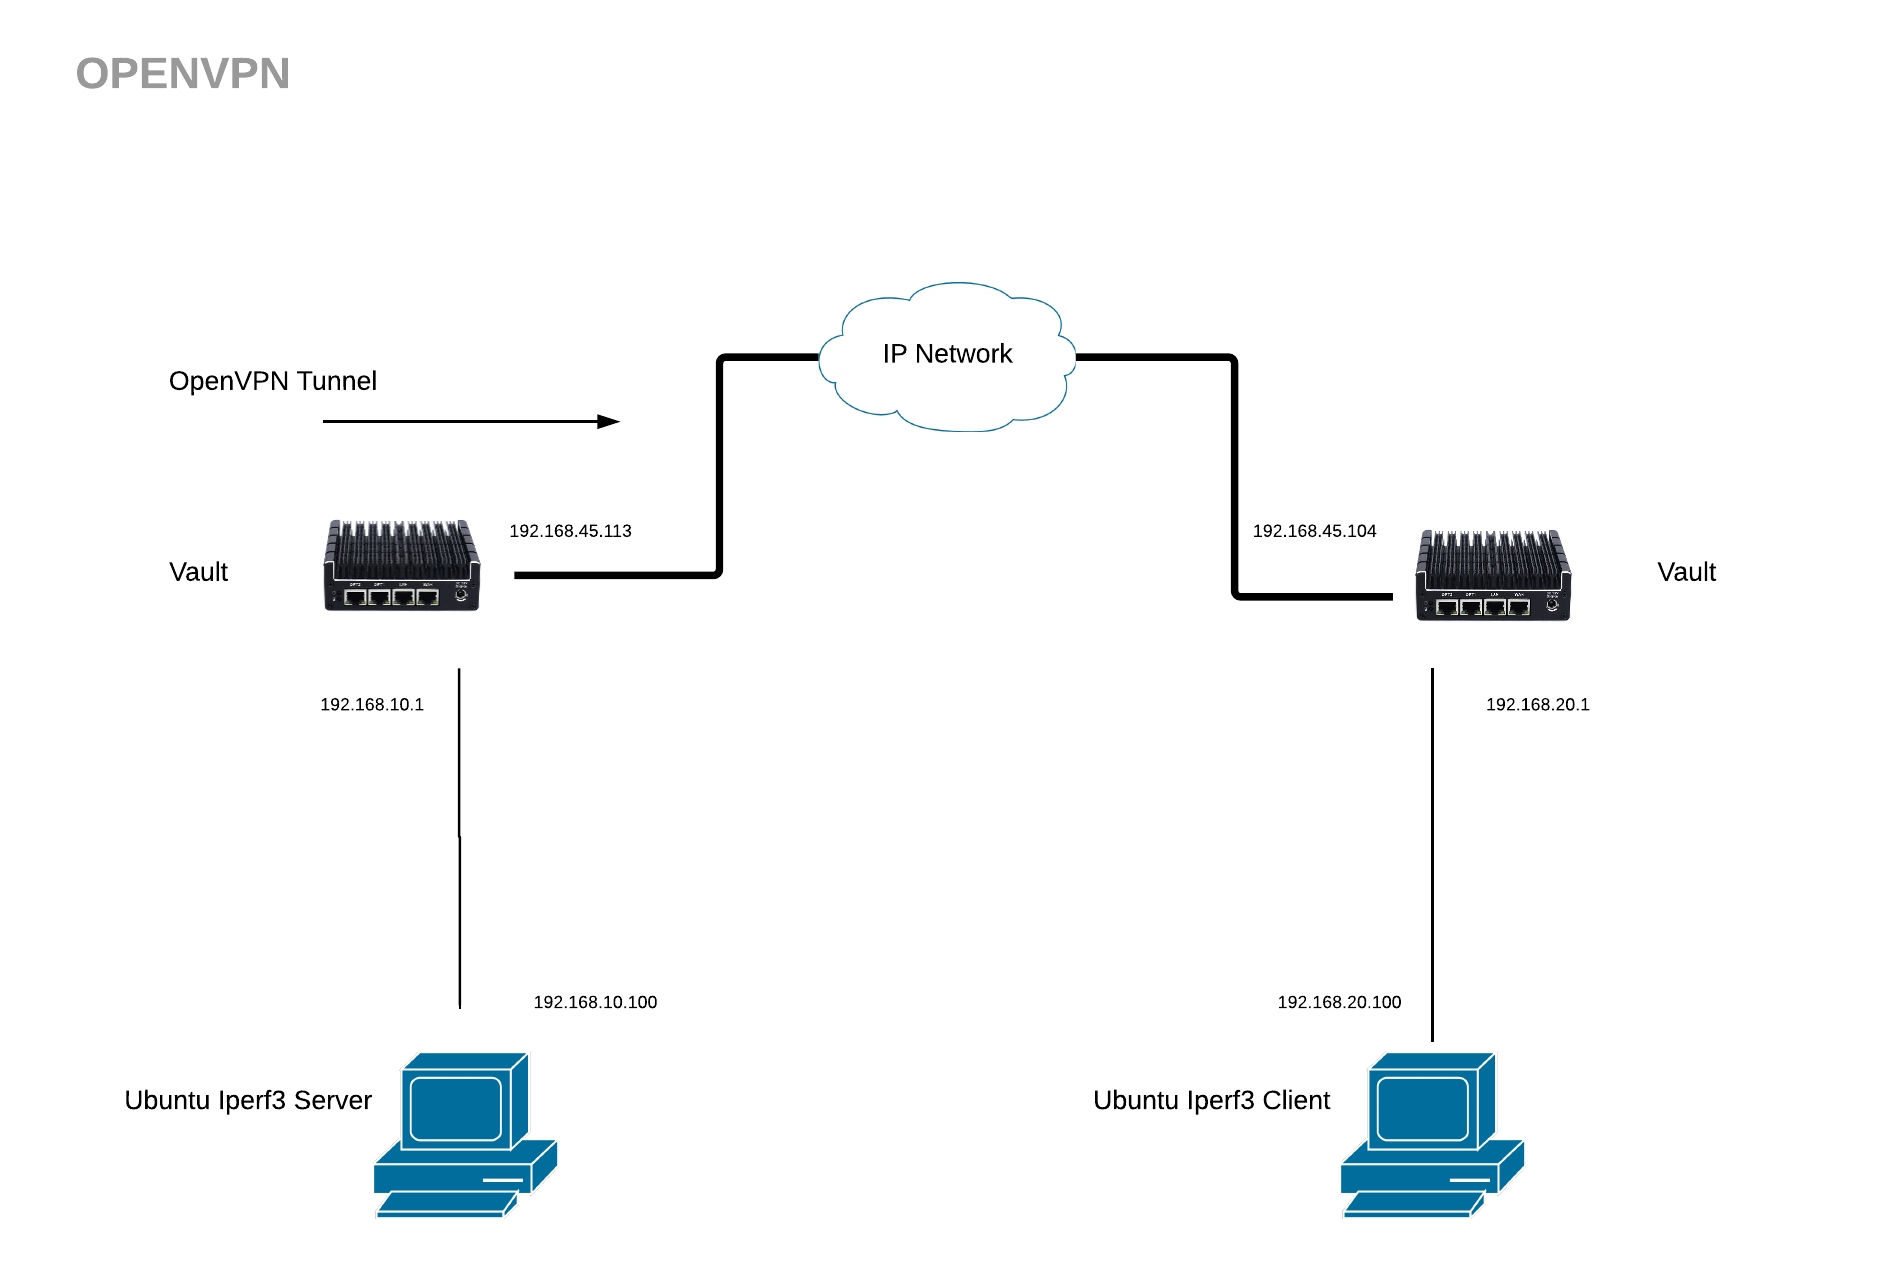 hight resolution of the difference between the lan example above and the openvpn tunnel is that the entire packet is encrypted end to end between the vault firewalls and the